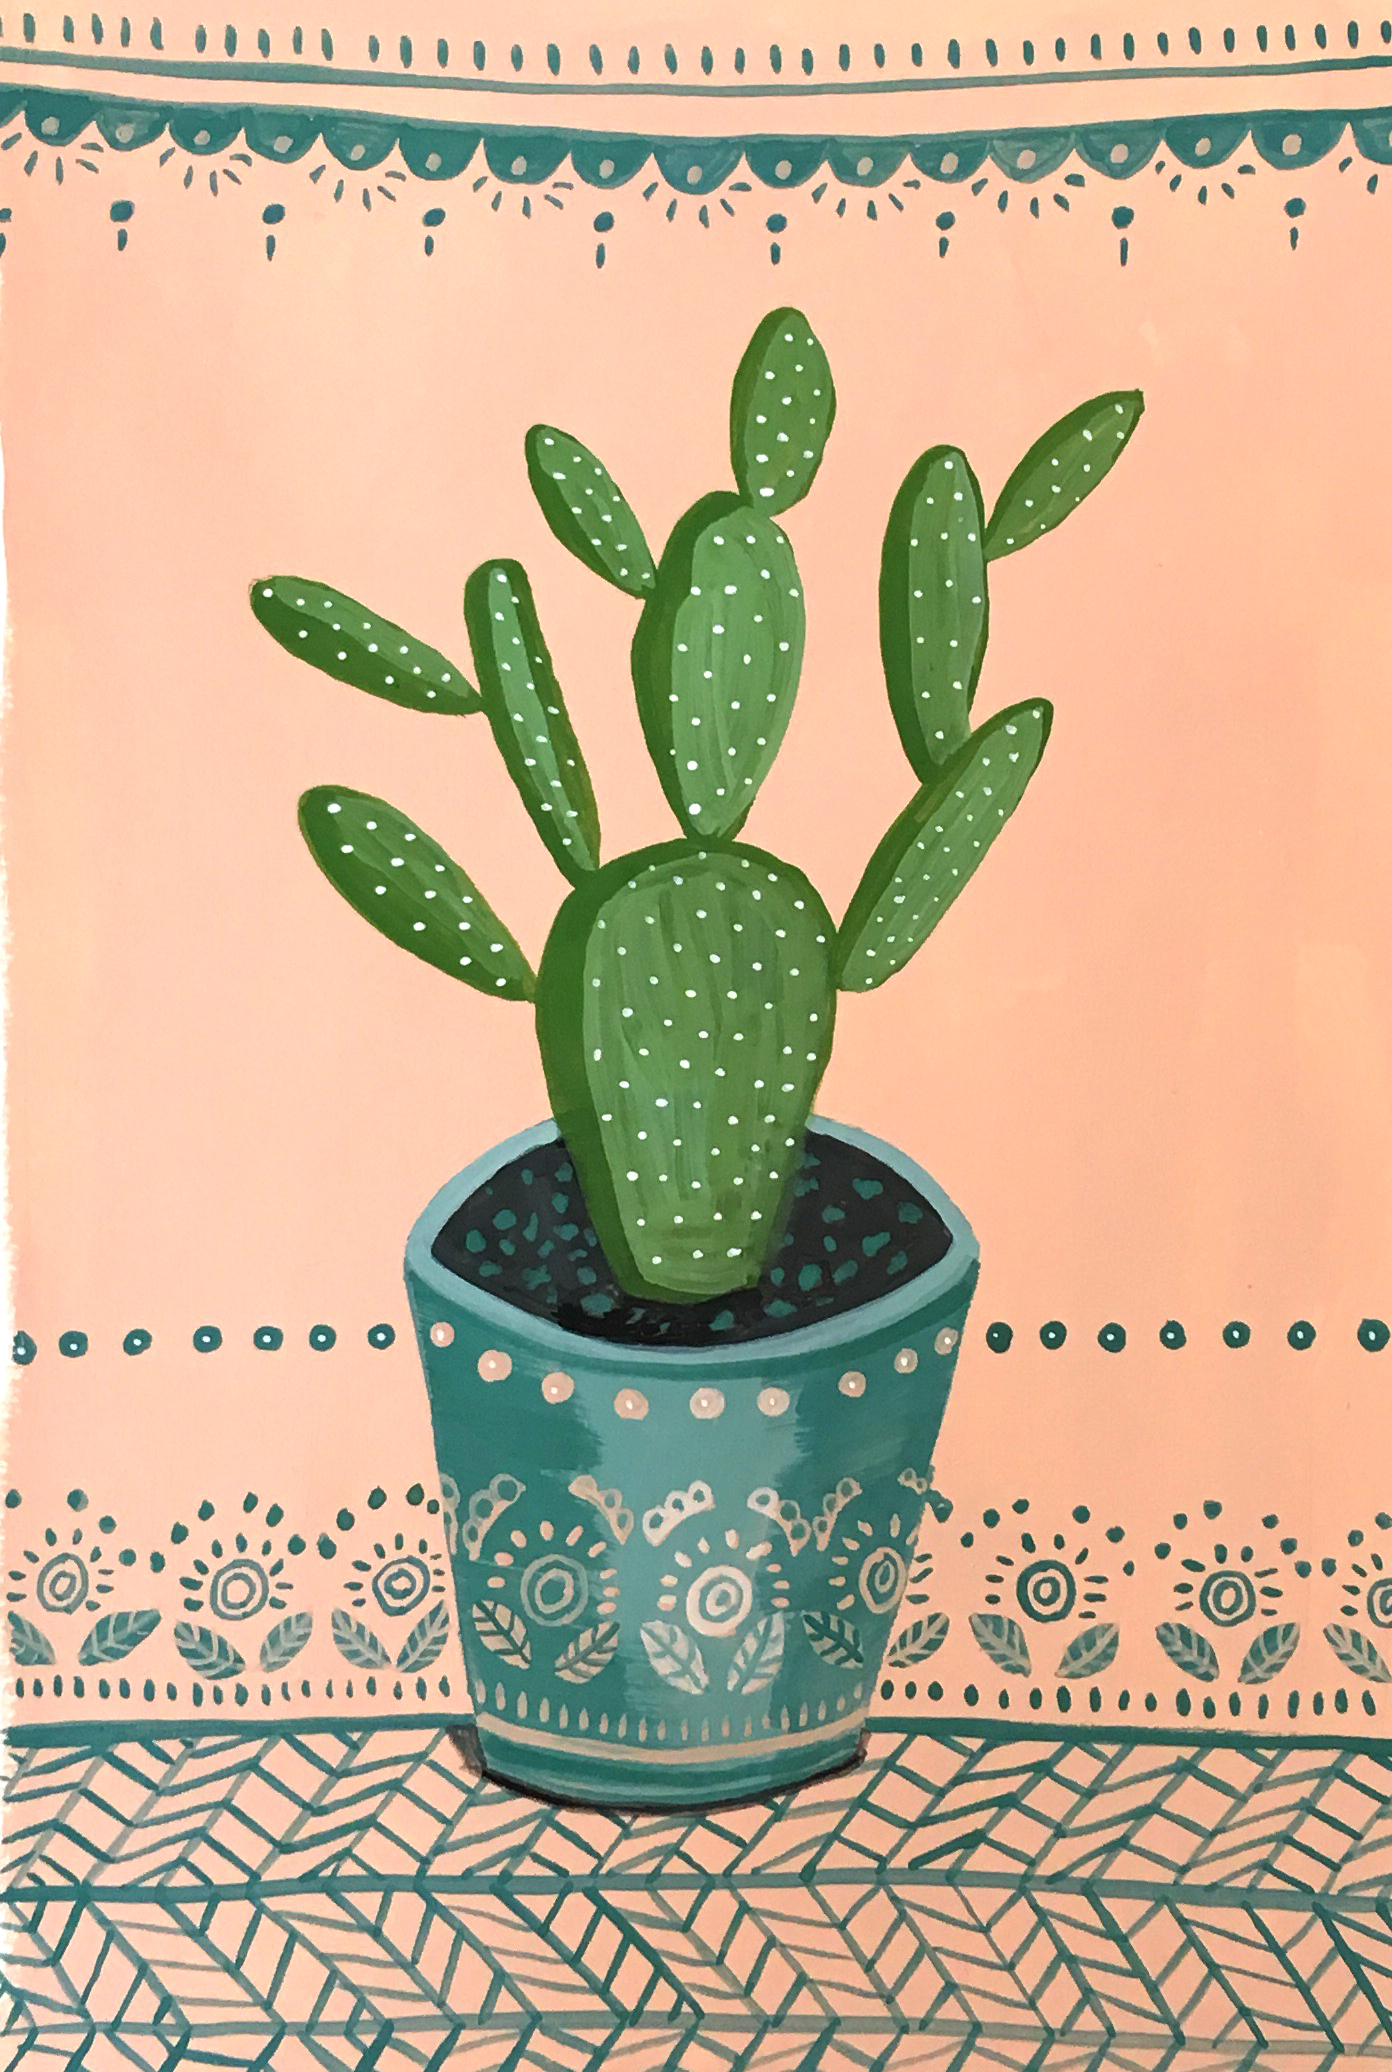 Cactus and the pattern